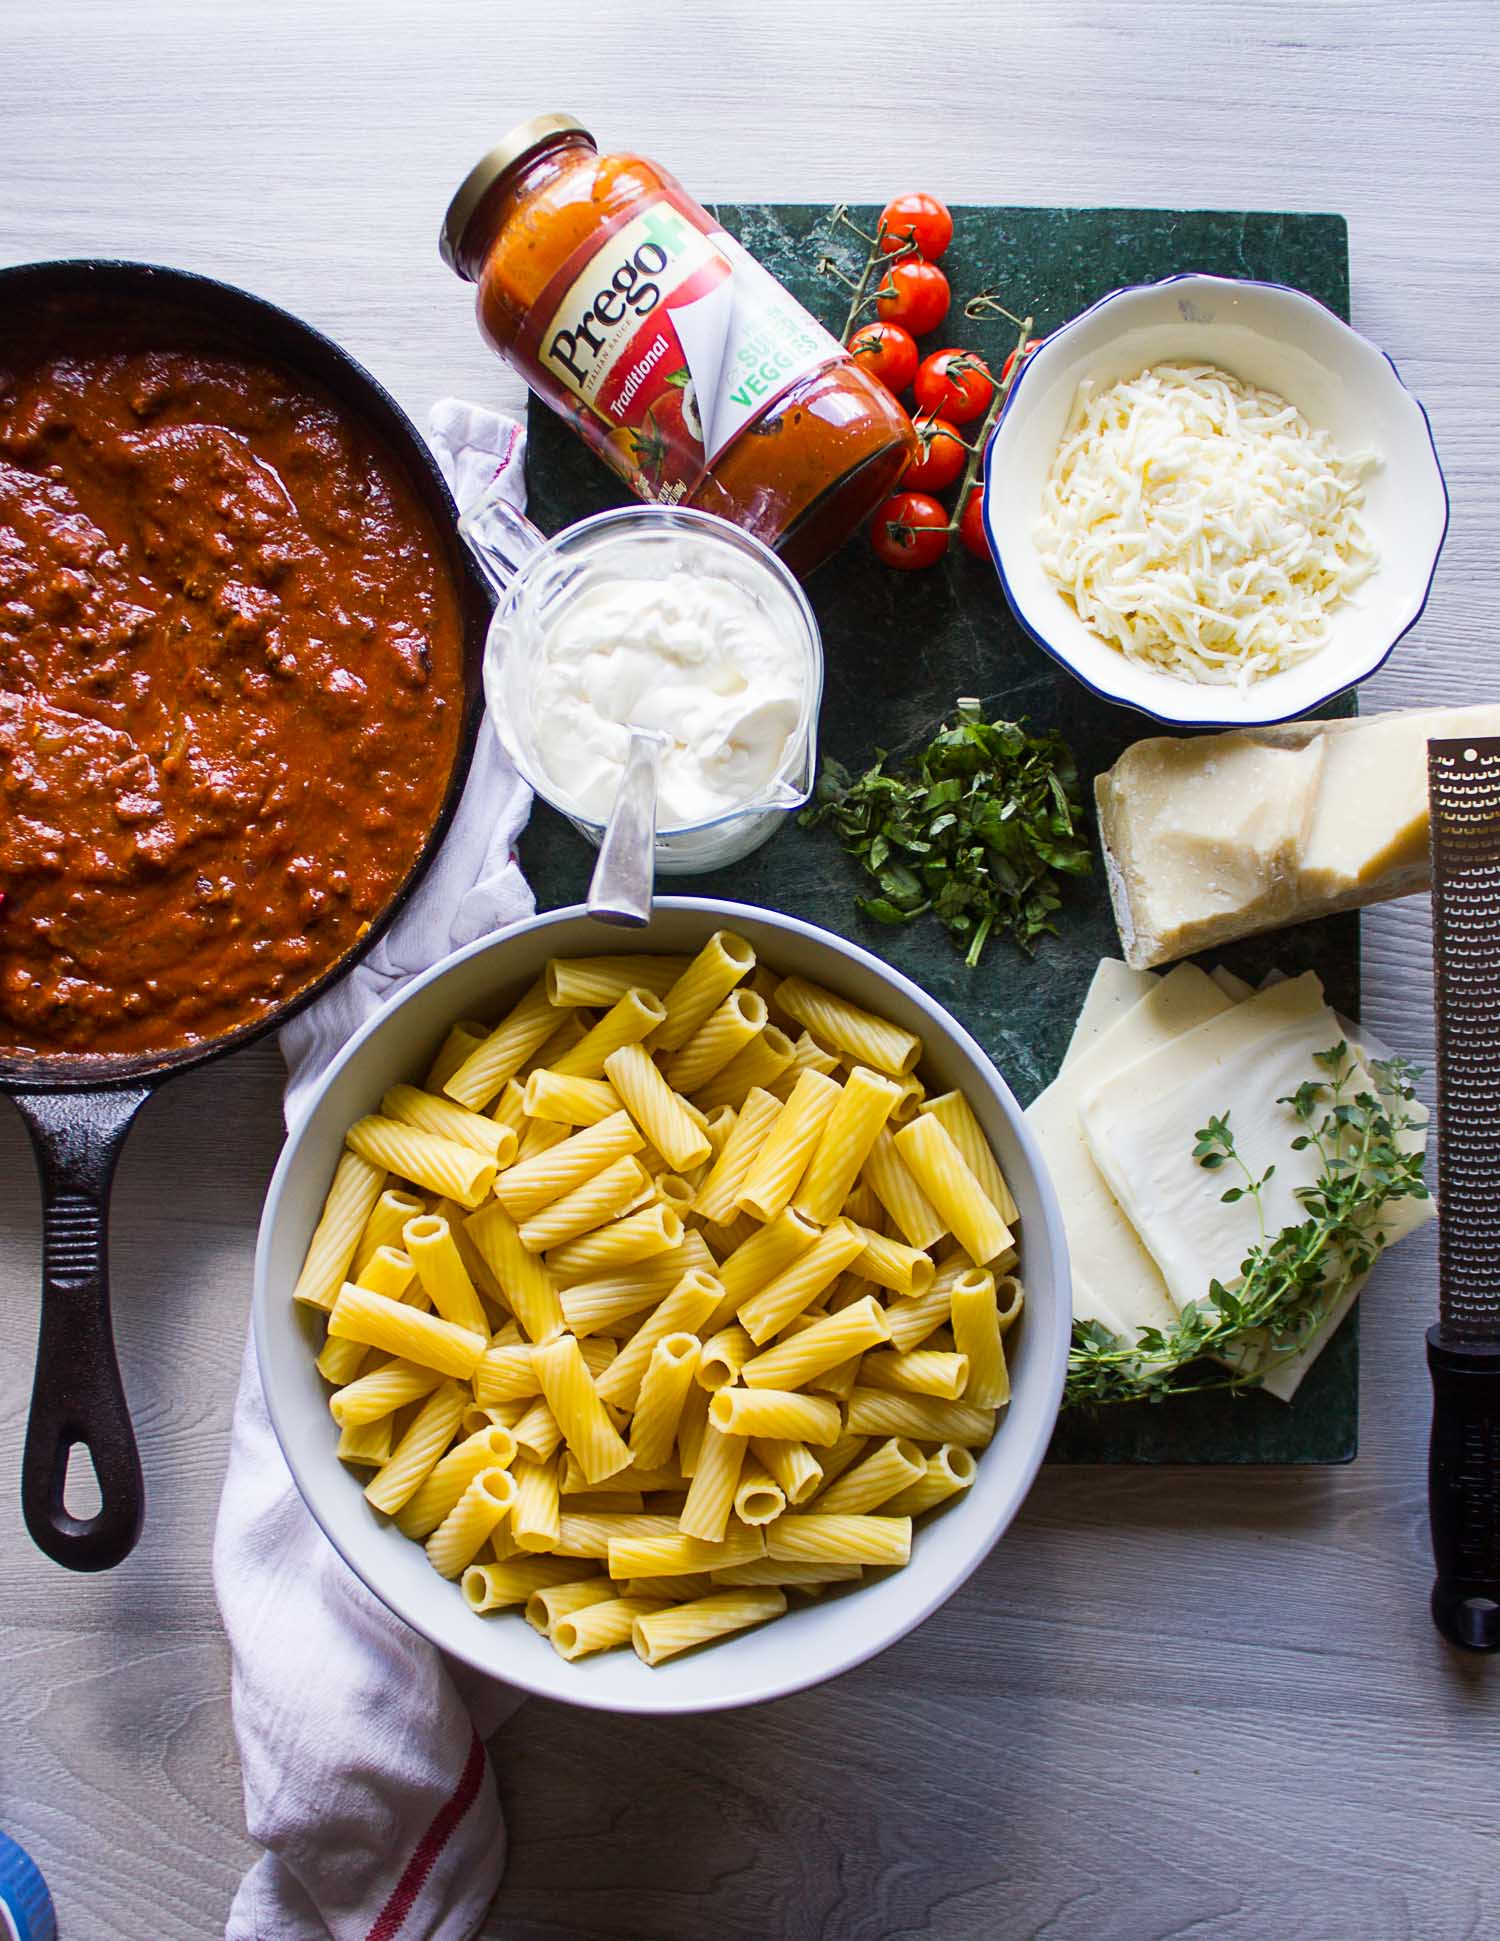 Ingredients for the baked ziti recipe on a board. Includes the cooked ziti pasta, the beef sauce, the cheeses and herbs